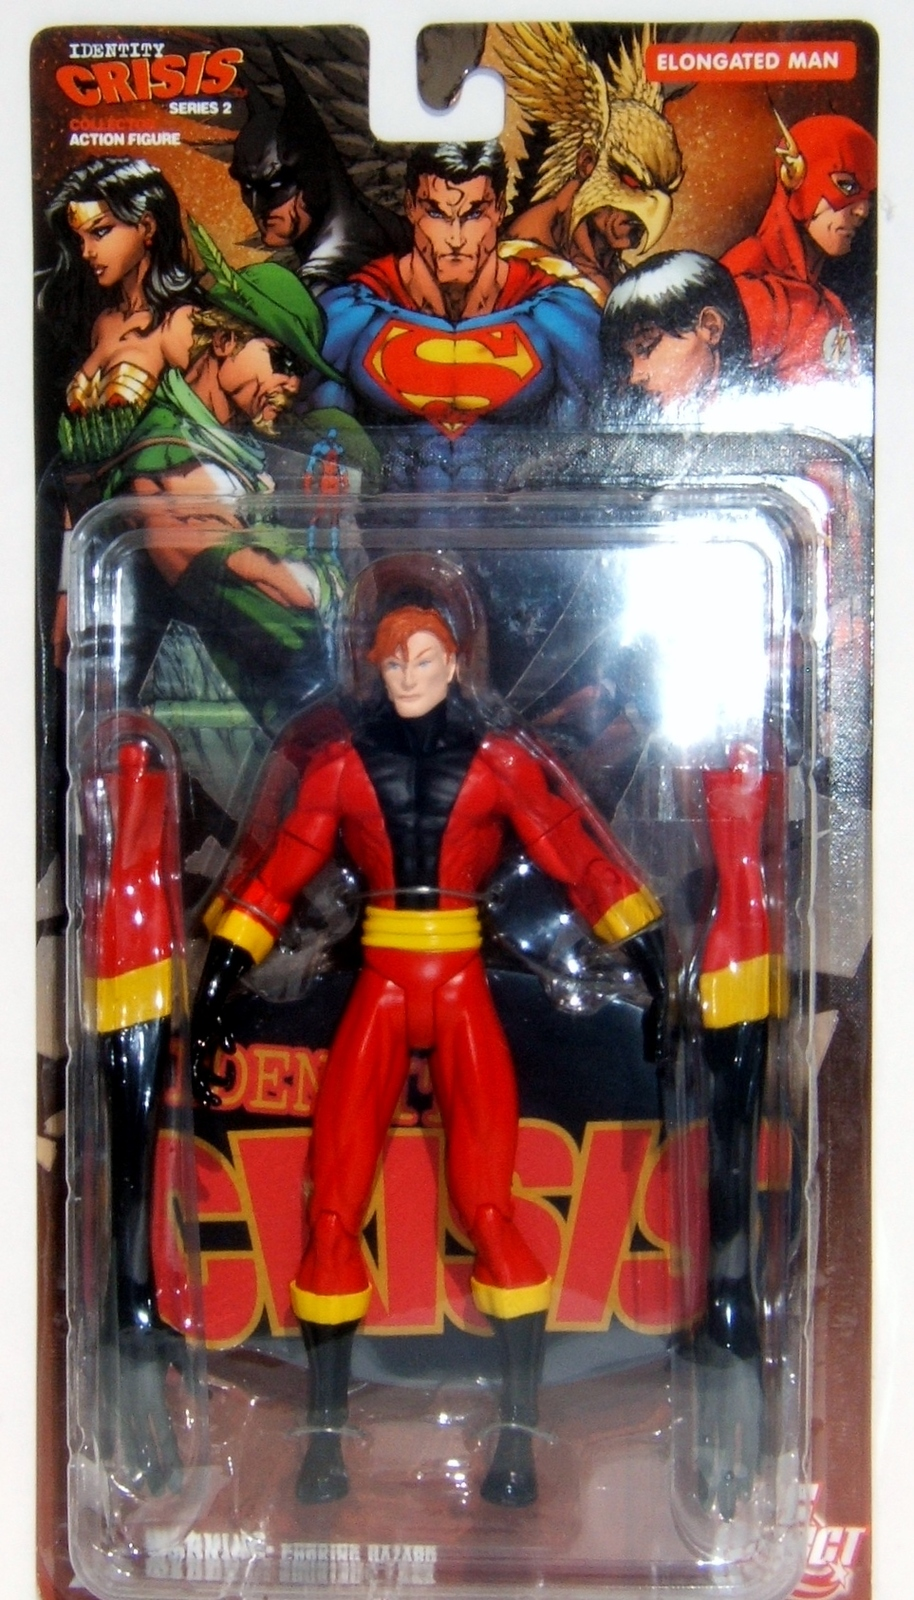 DC Direct Identity Crisis The Elongated Man Series 2 MOC Action Figure